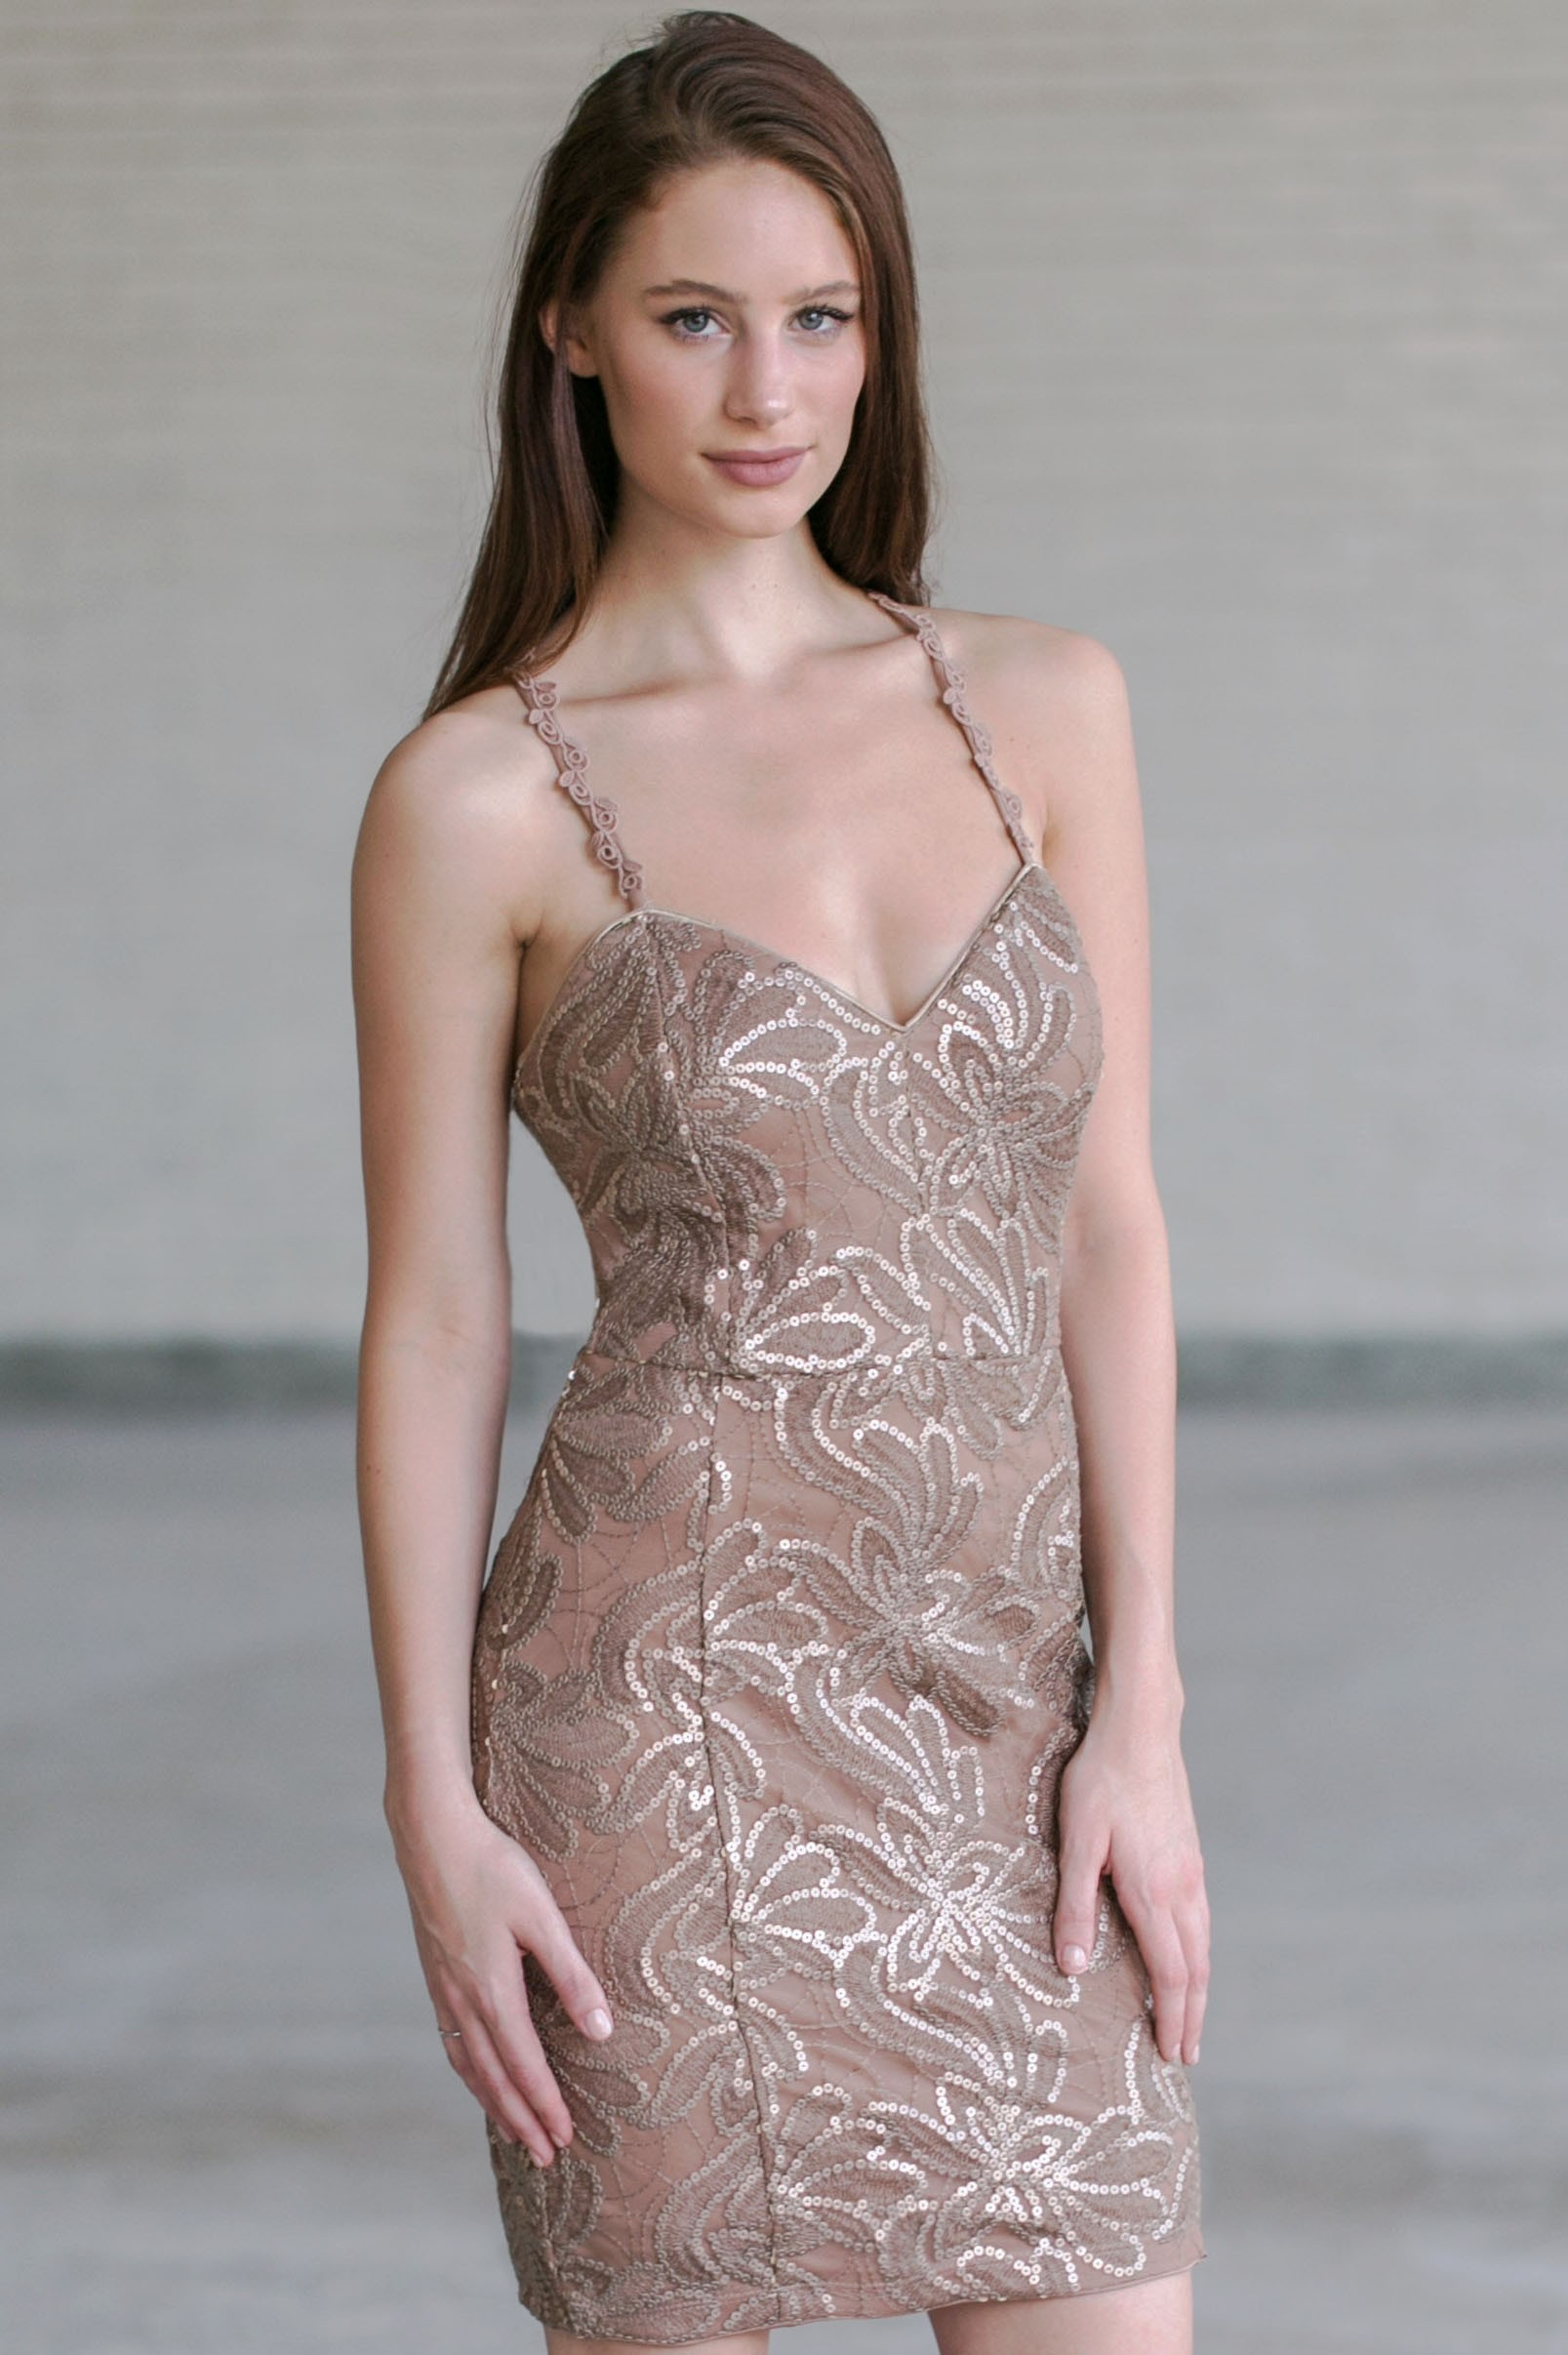 a1b32642b Brown Dresses for Women | Cute Taupe & Mocha Party Dresses | Lily ...